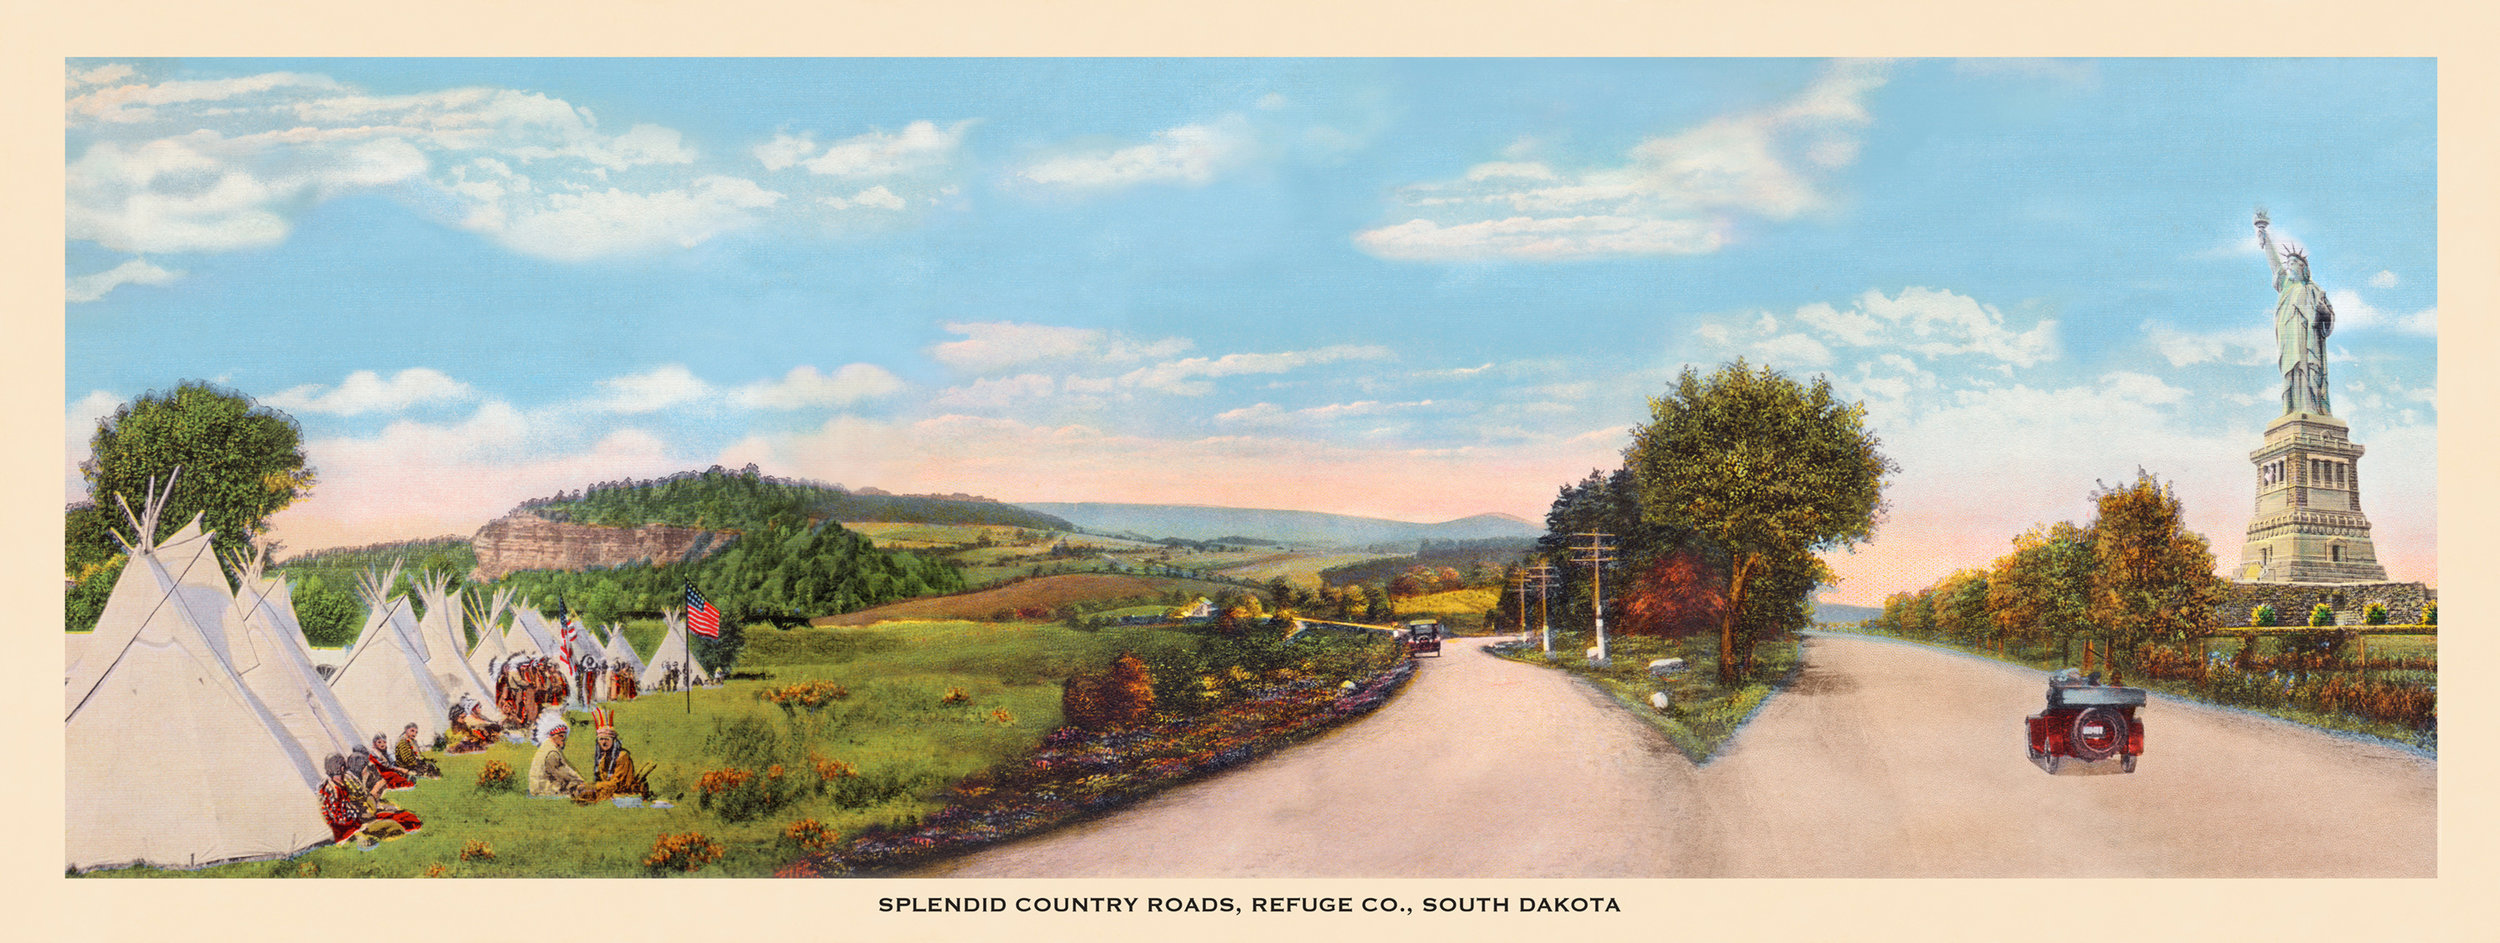 Judith G. Levy,  Splendid County Roads, Refuge Co., South Dakota , Archival Digital Collage, Edition 4 of 10